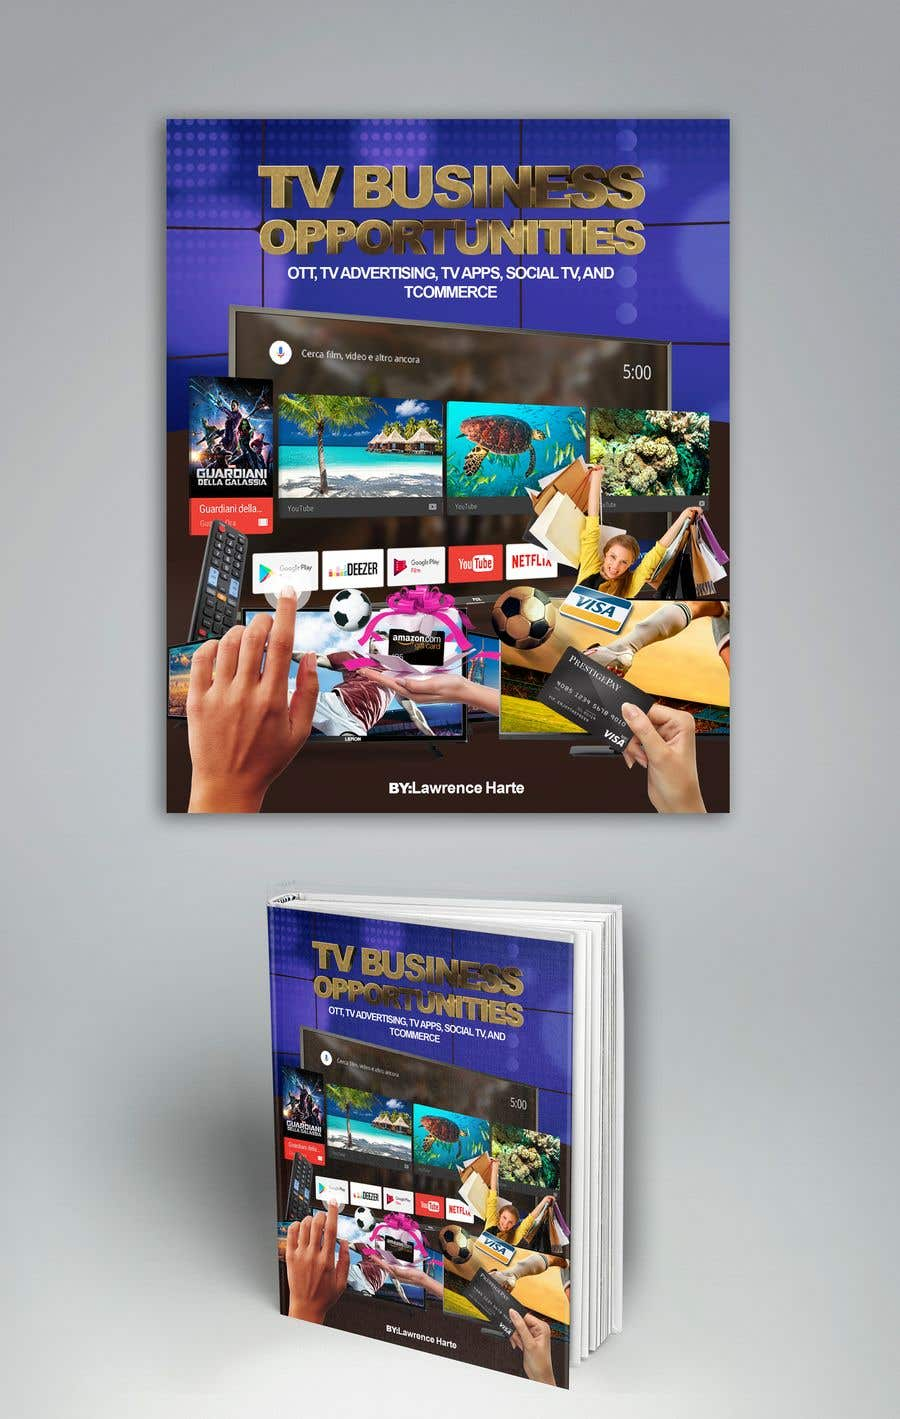 Bài tham dự cuộc thi #58 cho Create a Front Book Cover Image about New TV Business Opportunities